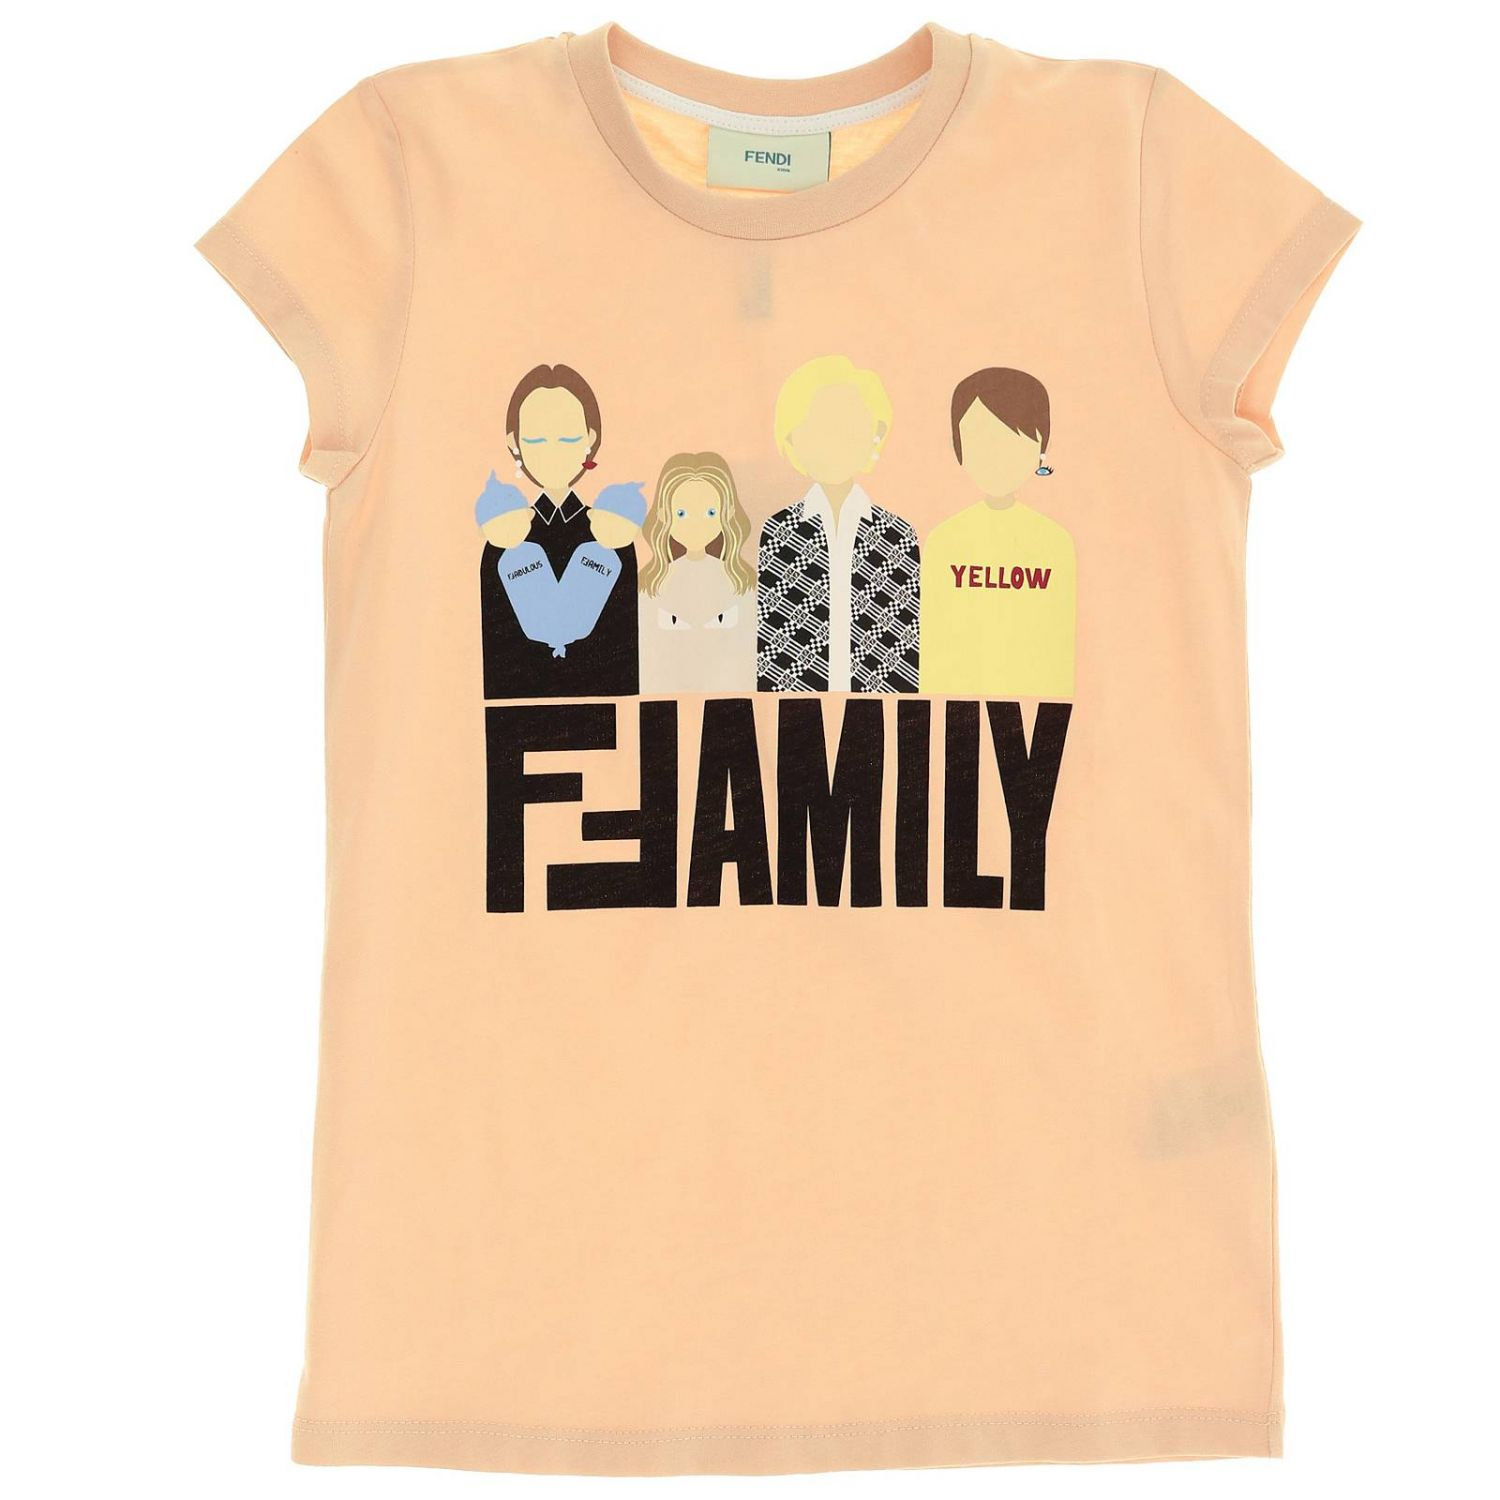 FENDI | T-Shirt T-Shirt Kids Fendi | Goxip